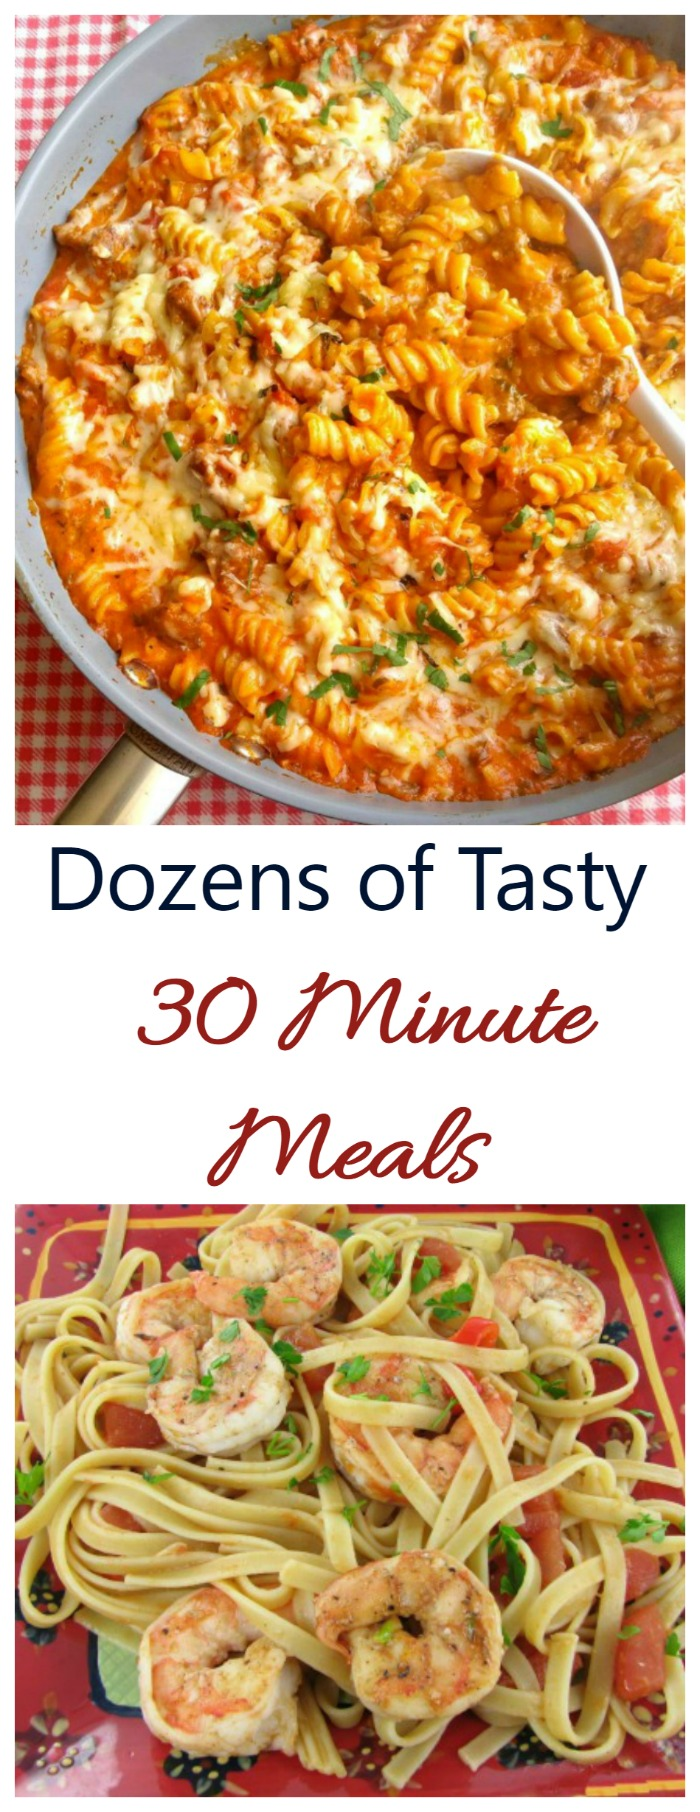 Browse my collection of dozens 30 minute meals featuring ideas for breakfast, lunch and dinner, as well as appetizers and desserts.